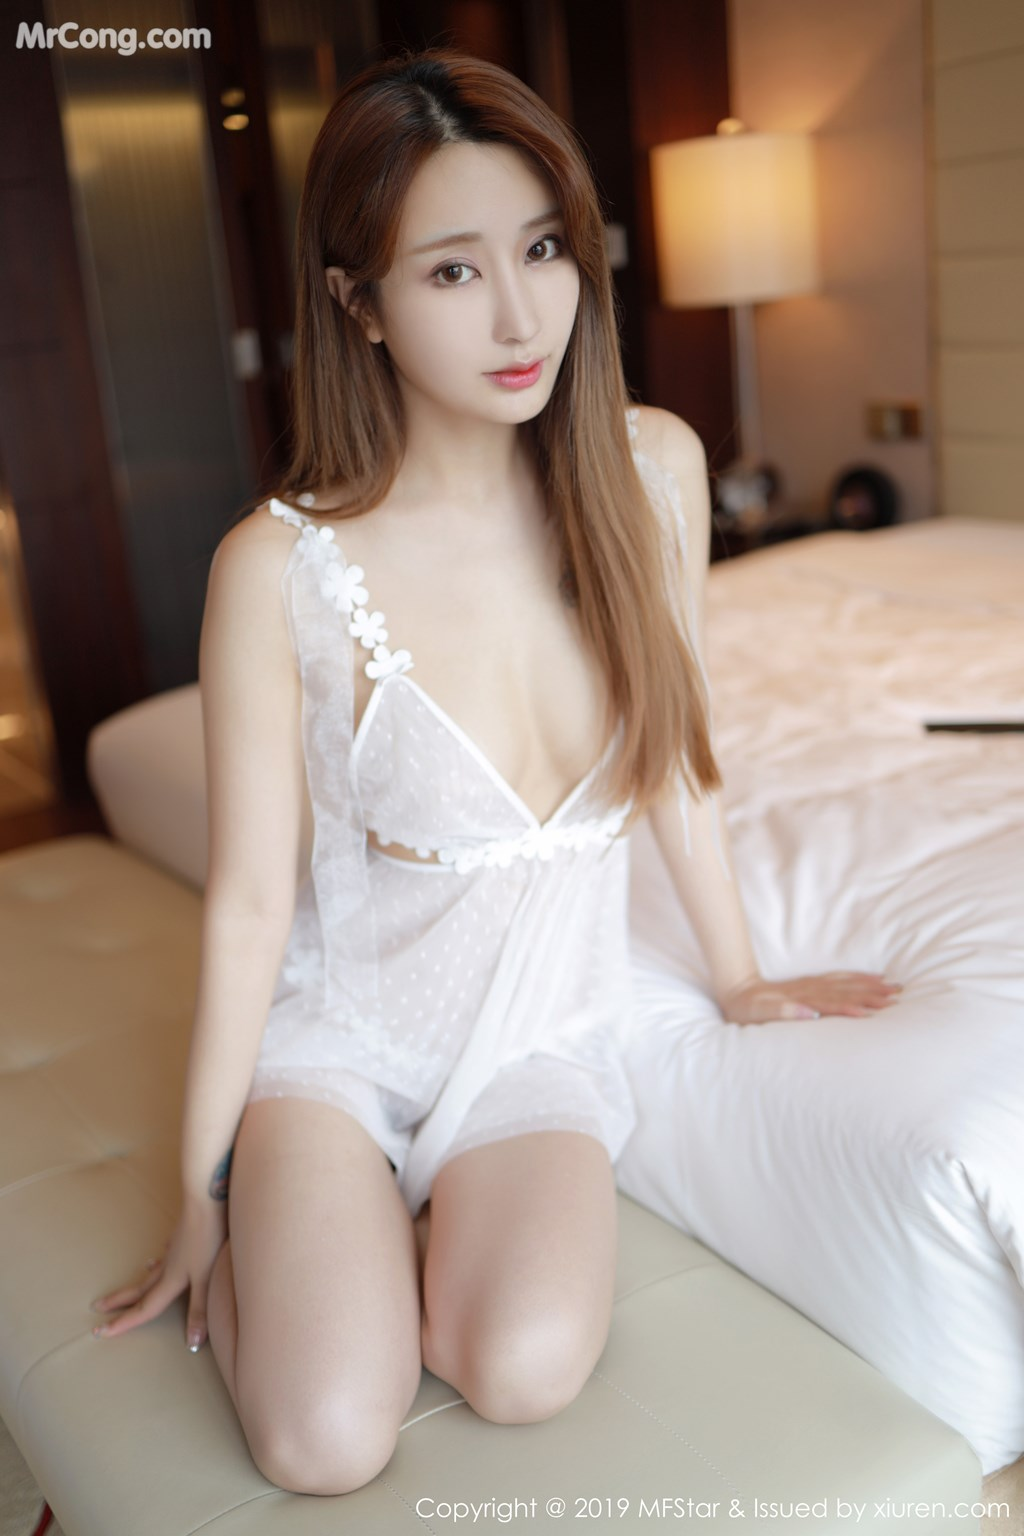 Image MFStar-Vol.205-nana-MrCong.com-005 in post MFStar Vol.205: 奈美nana (51 ảnh)